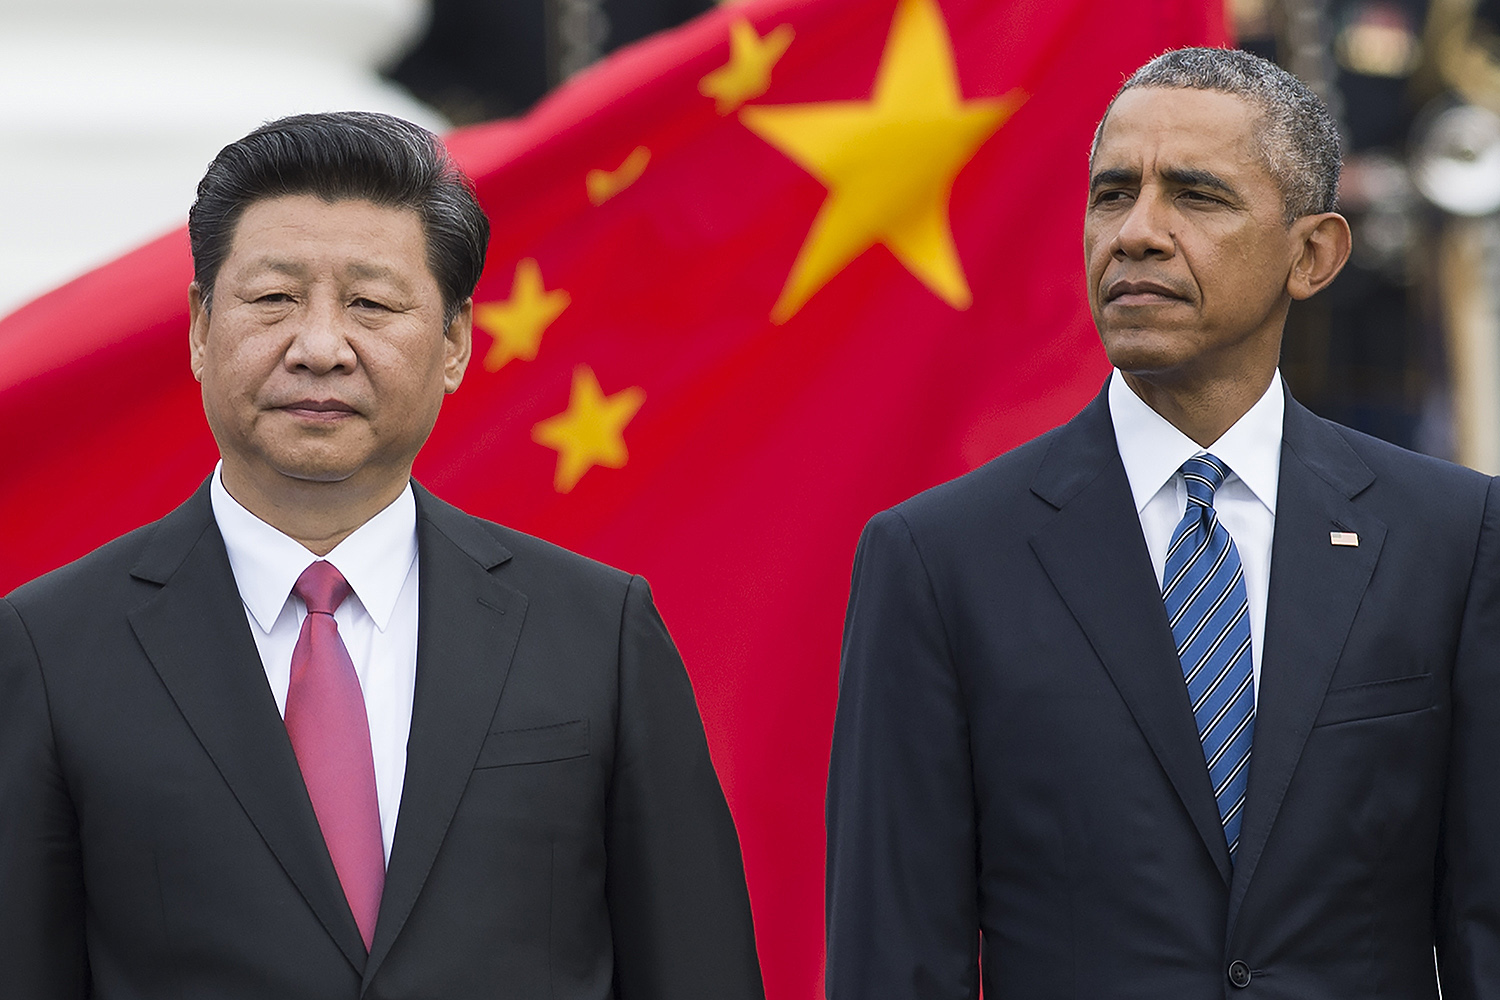 U.S. President Barack Obama and Chinese President Xi Jinping attend a State Arrival ceremony on the South Lawn of the White House in Washington, D.C., on Sept. 25, 2015.